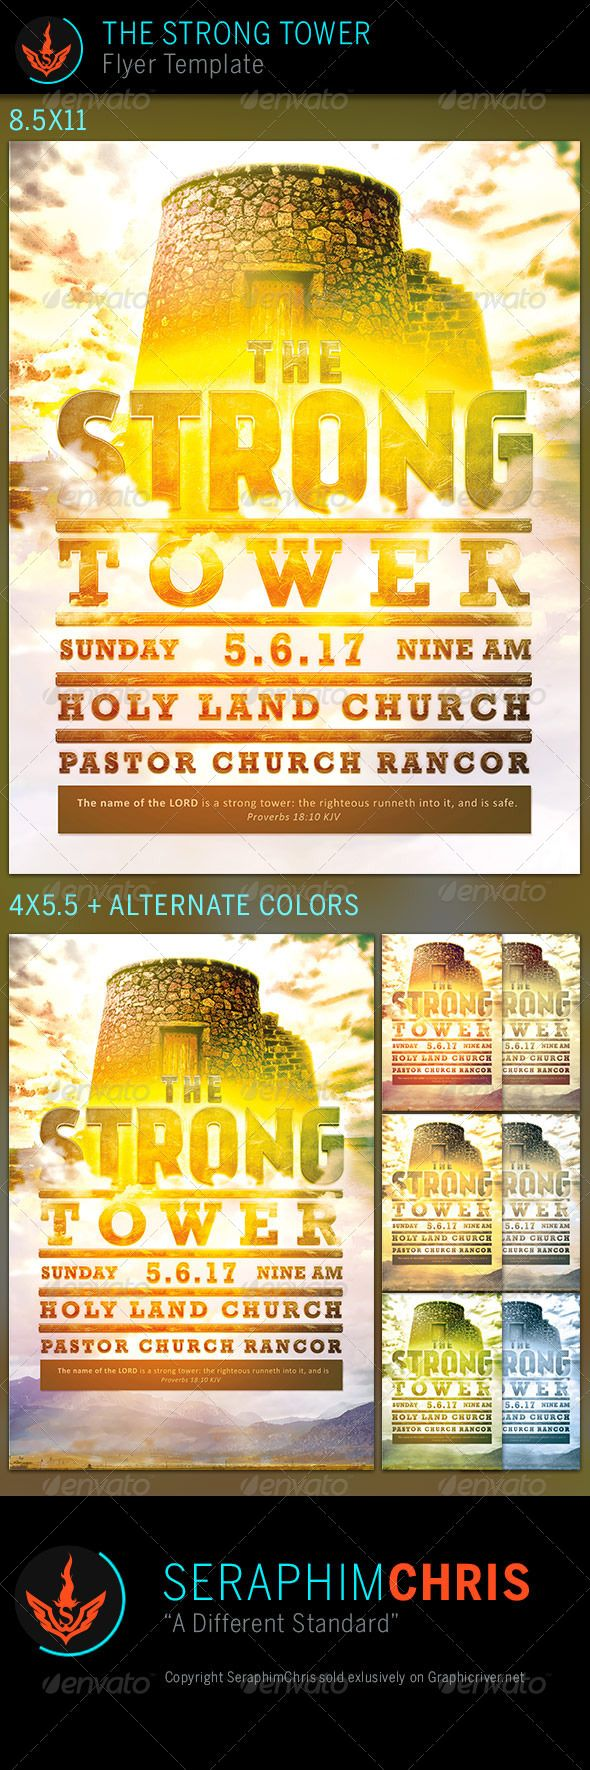 The Strong Tower Church Flyer Template Photoshop PSD Gospel Concert Grand Opening O Available Here